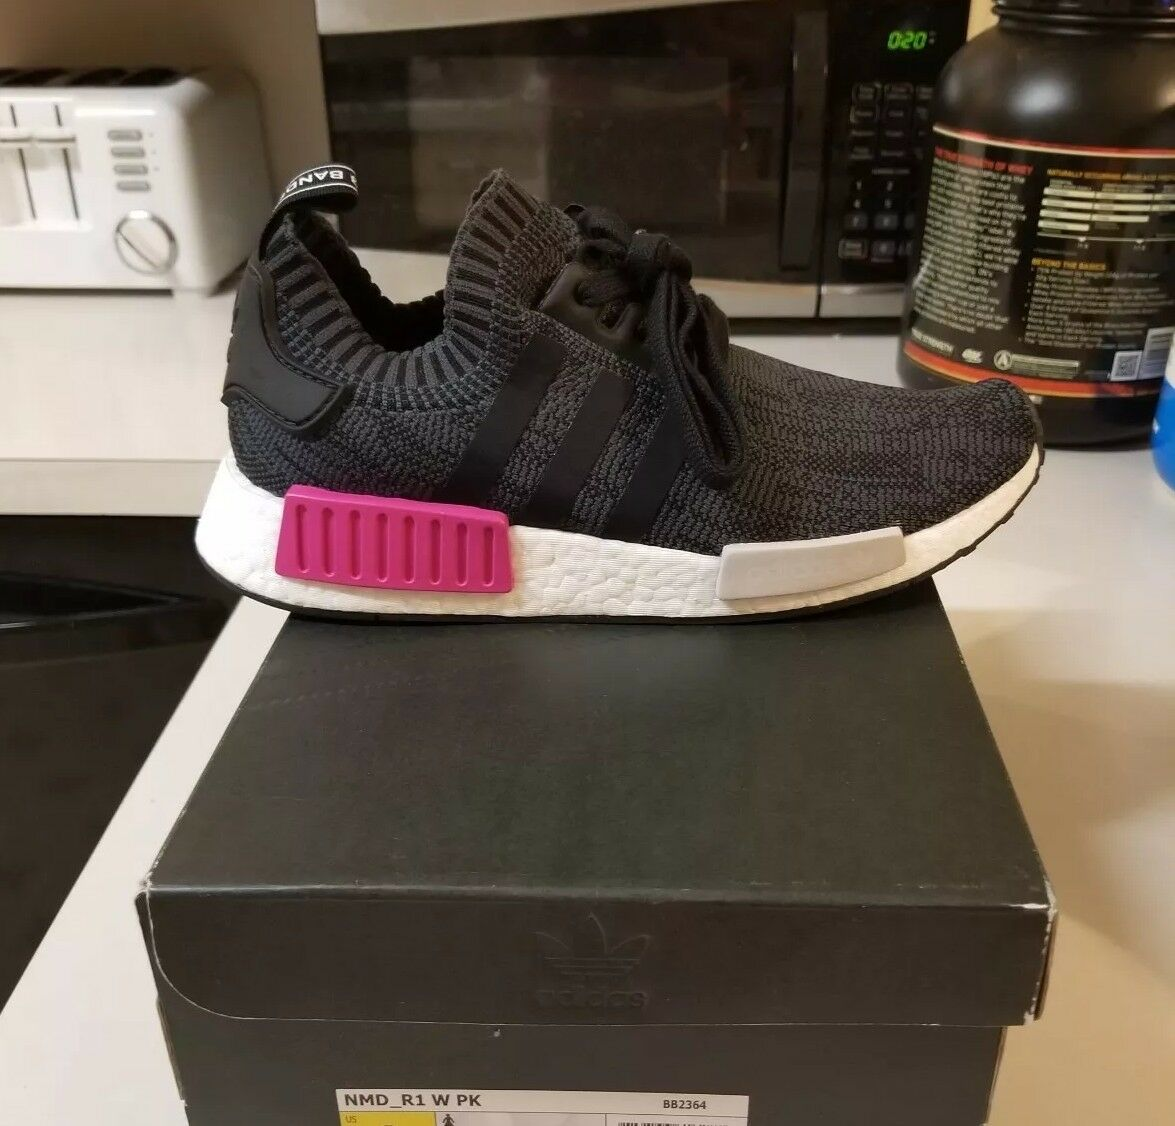 New 9.5 Women's Adidas NMD R1 PK Primeknit Running Training Casual shoes Black